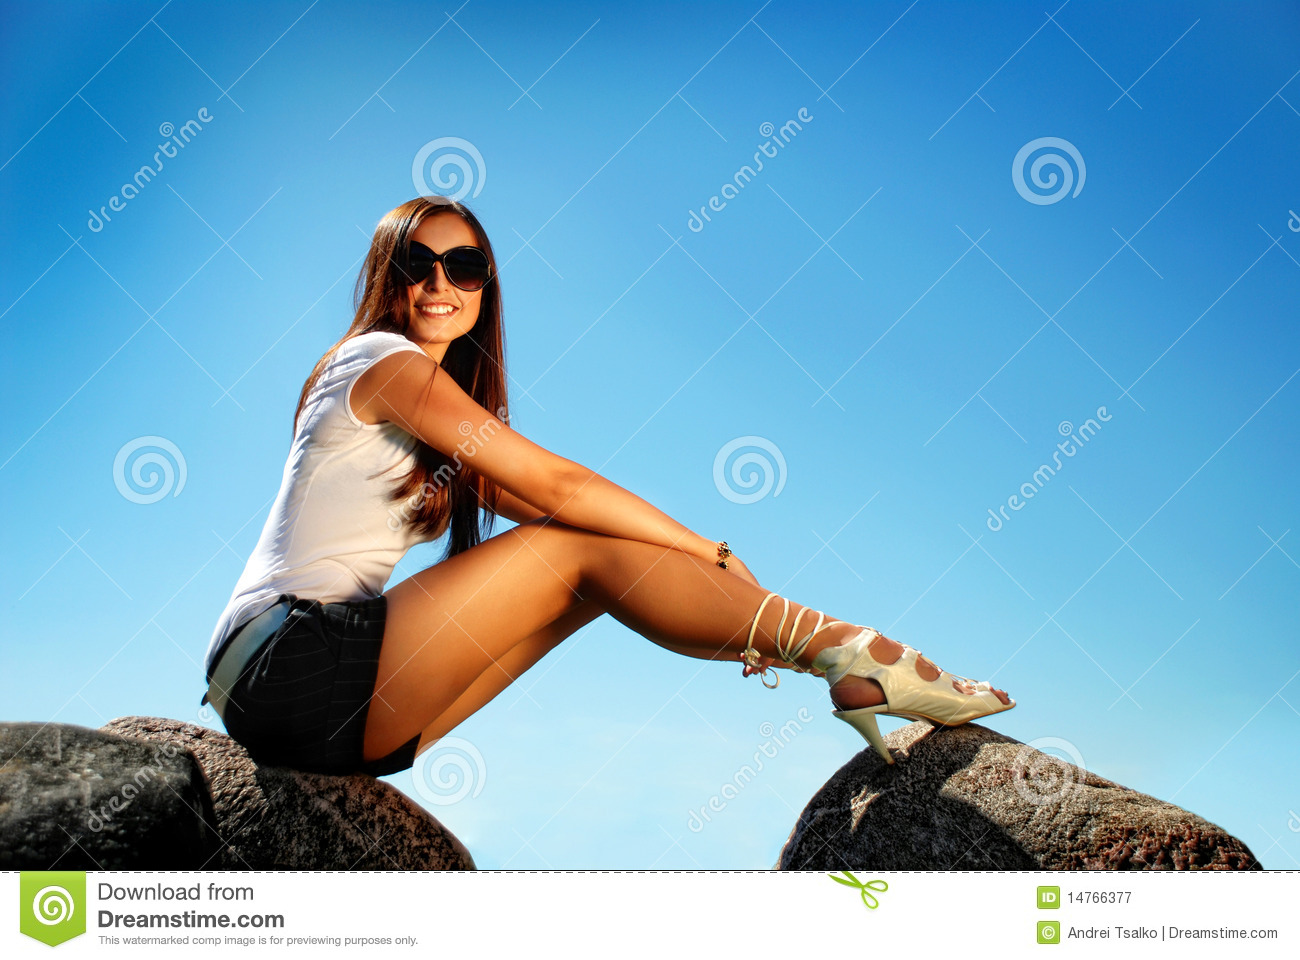 Fashion Model In High Hill Shoes An A Stone. Royalty Free Stock